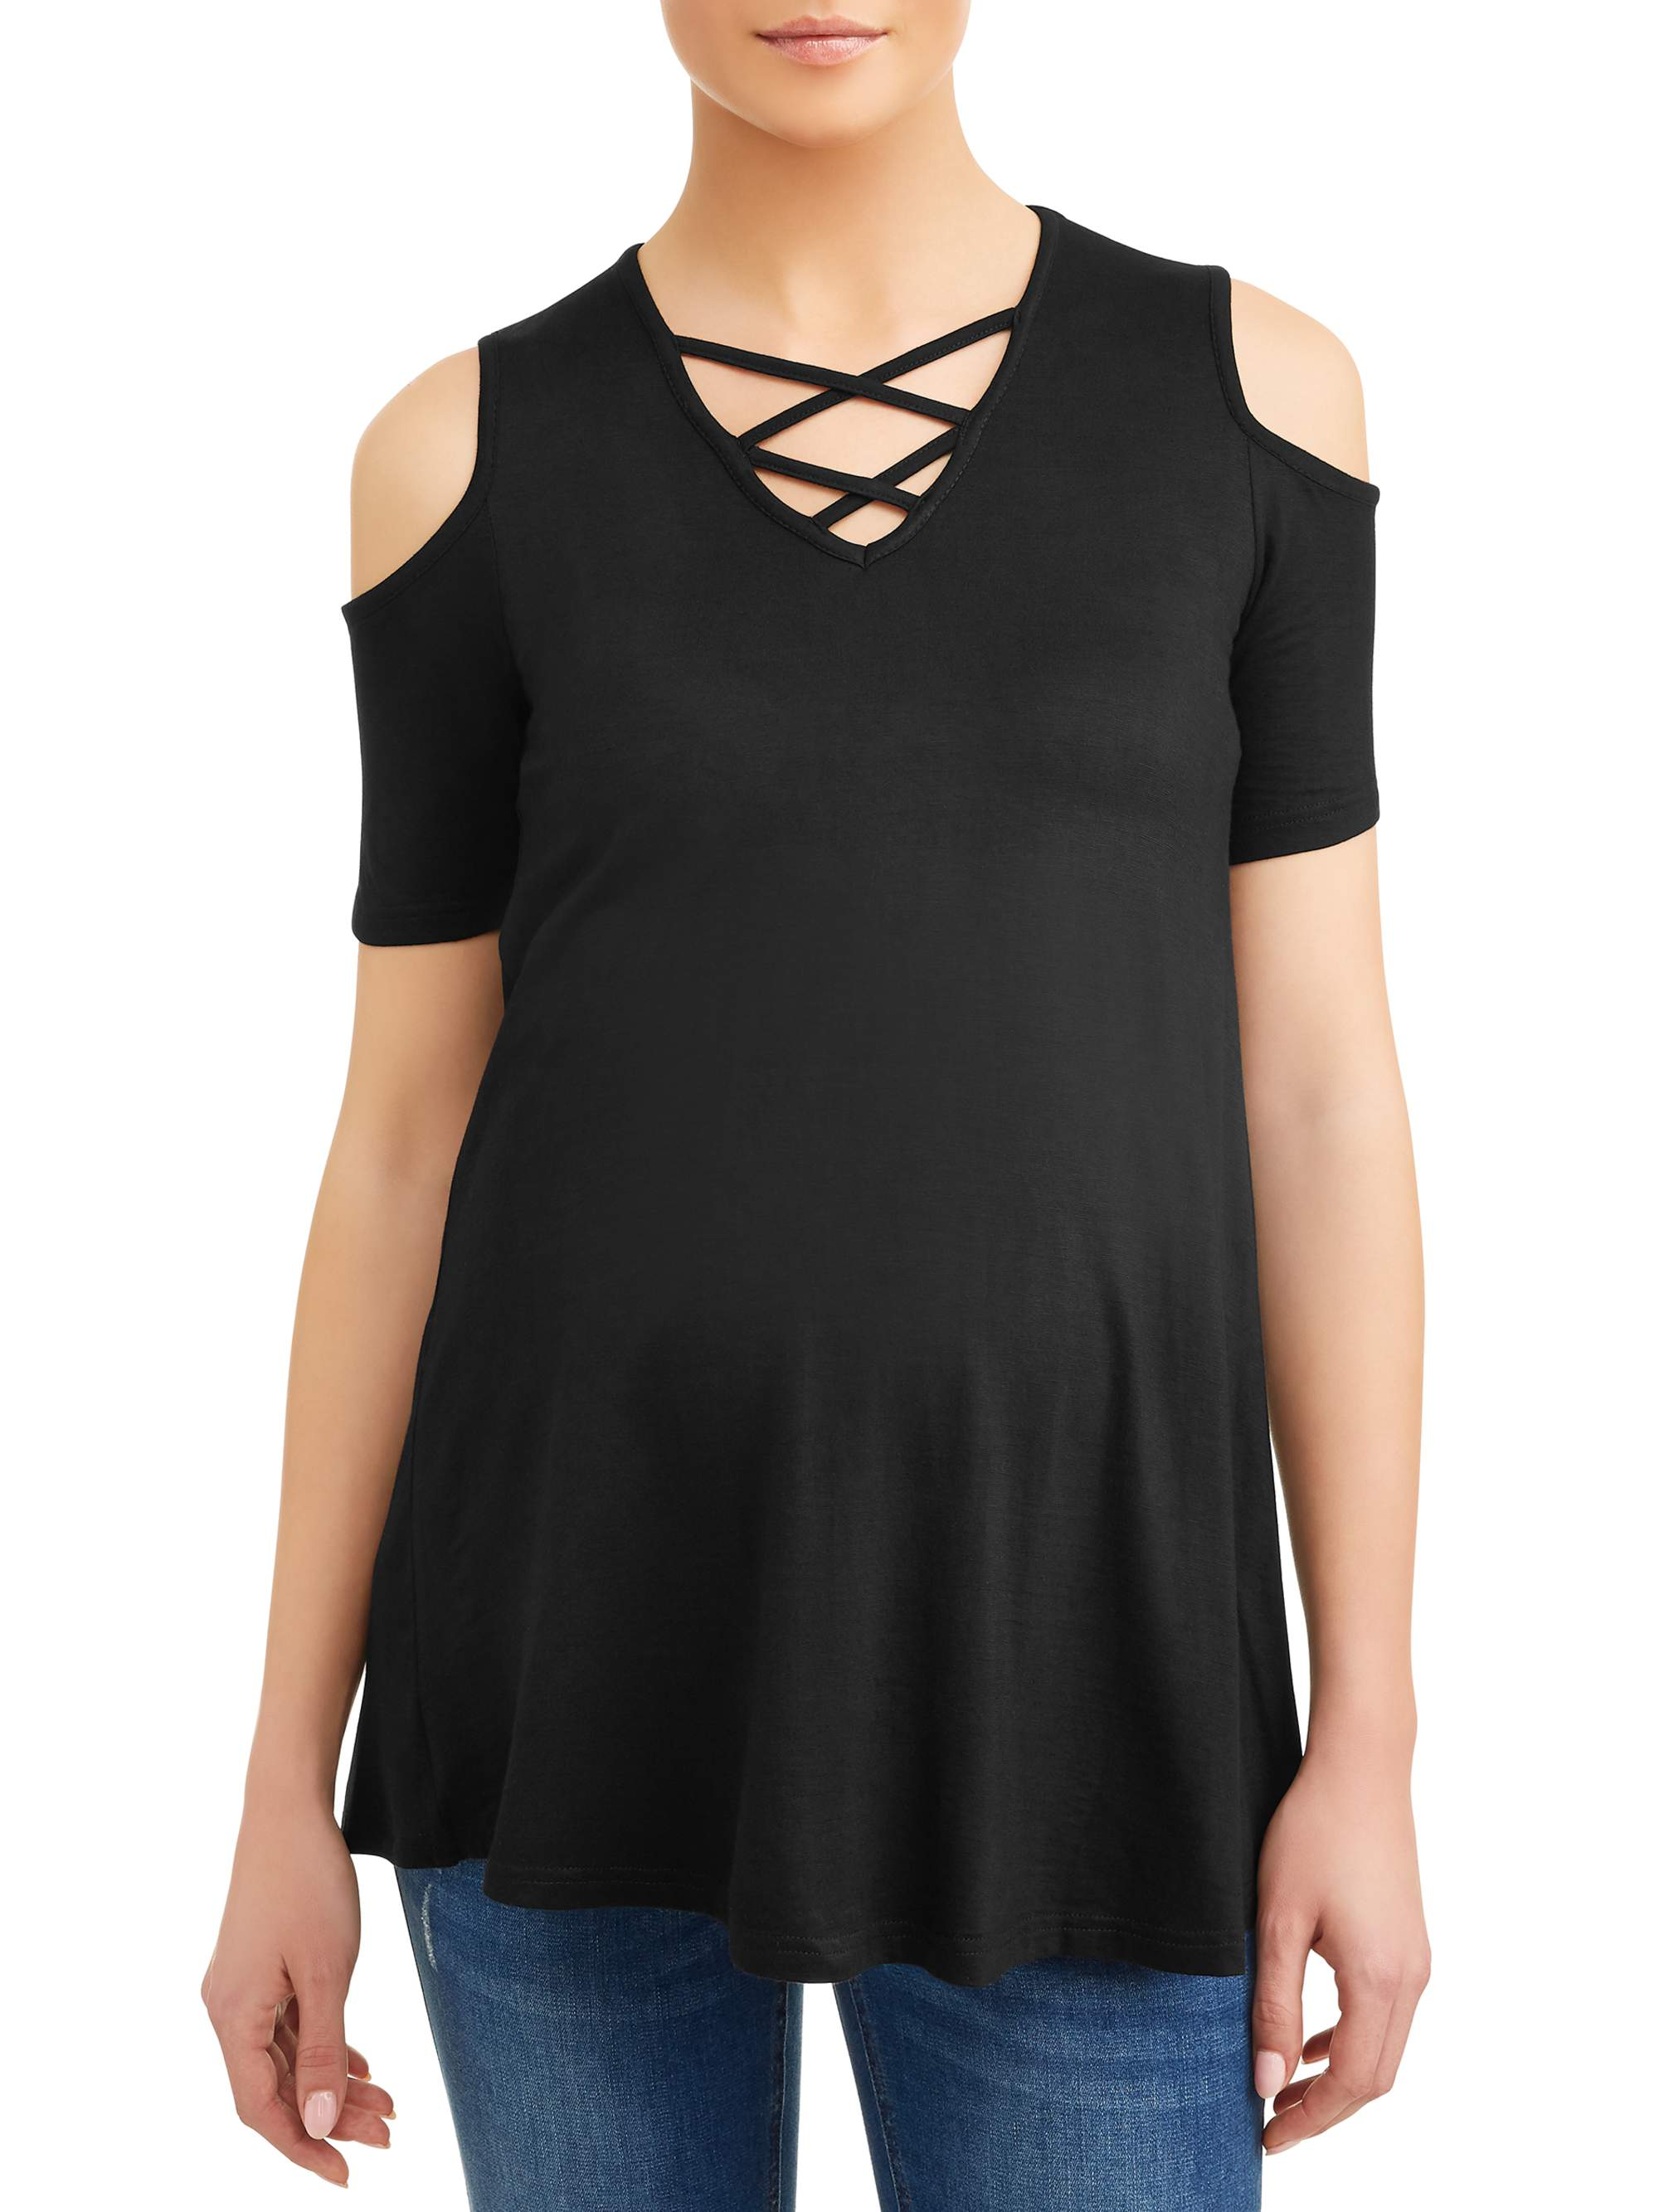 Maternity Cold Shoulder Top - Available in Plus Sizes